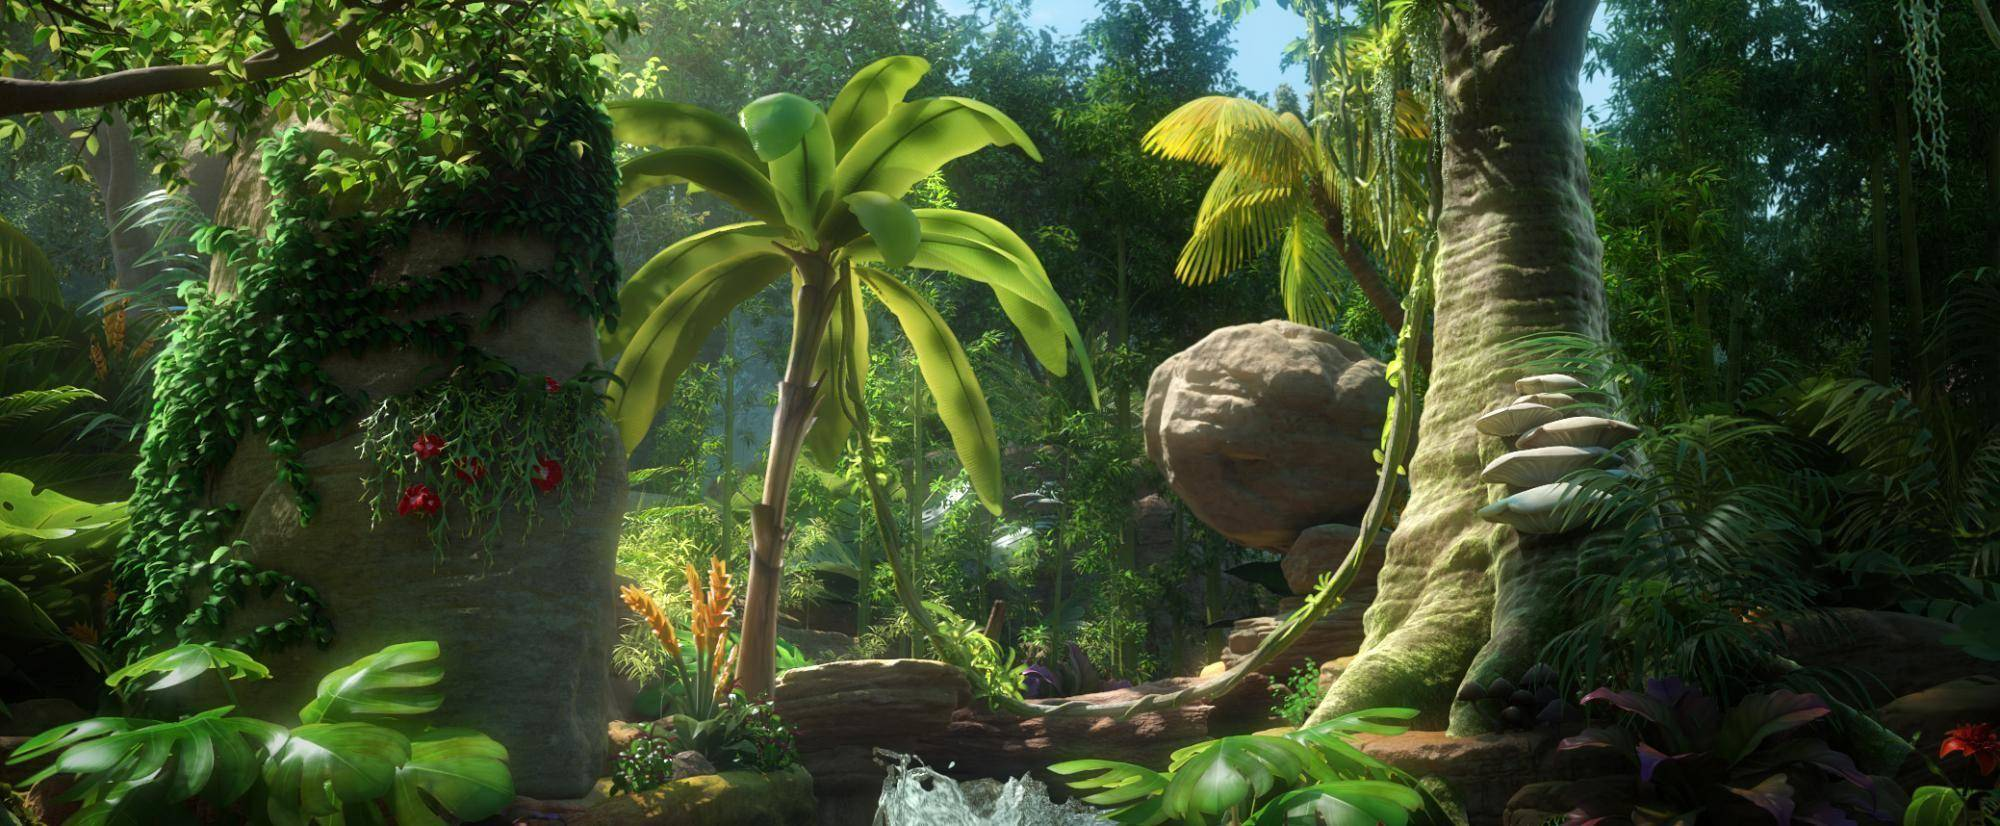 The Jungle Bunch - tat productions, groupe m6, france 3 cinema, master films  2017 05.jpg